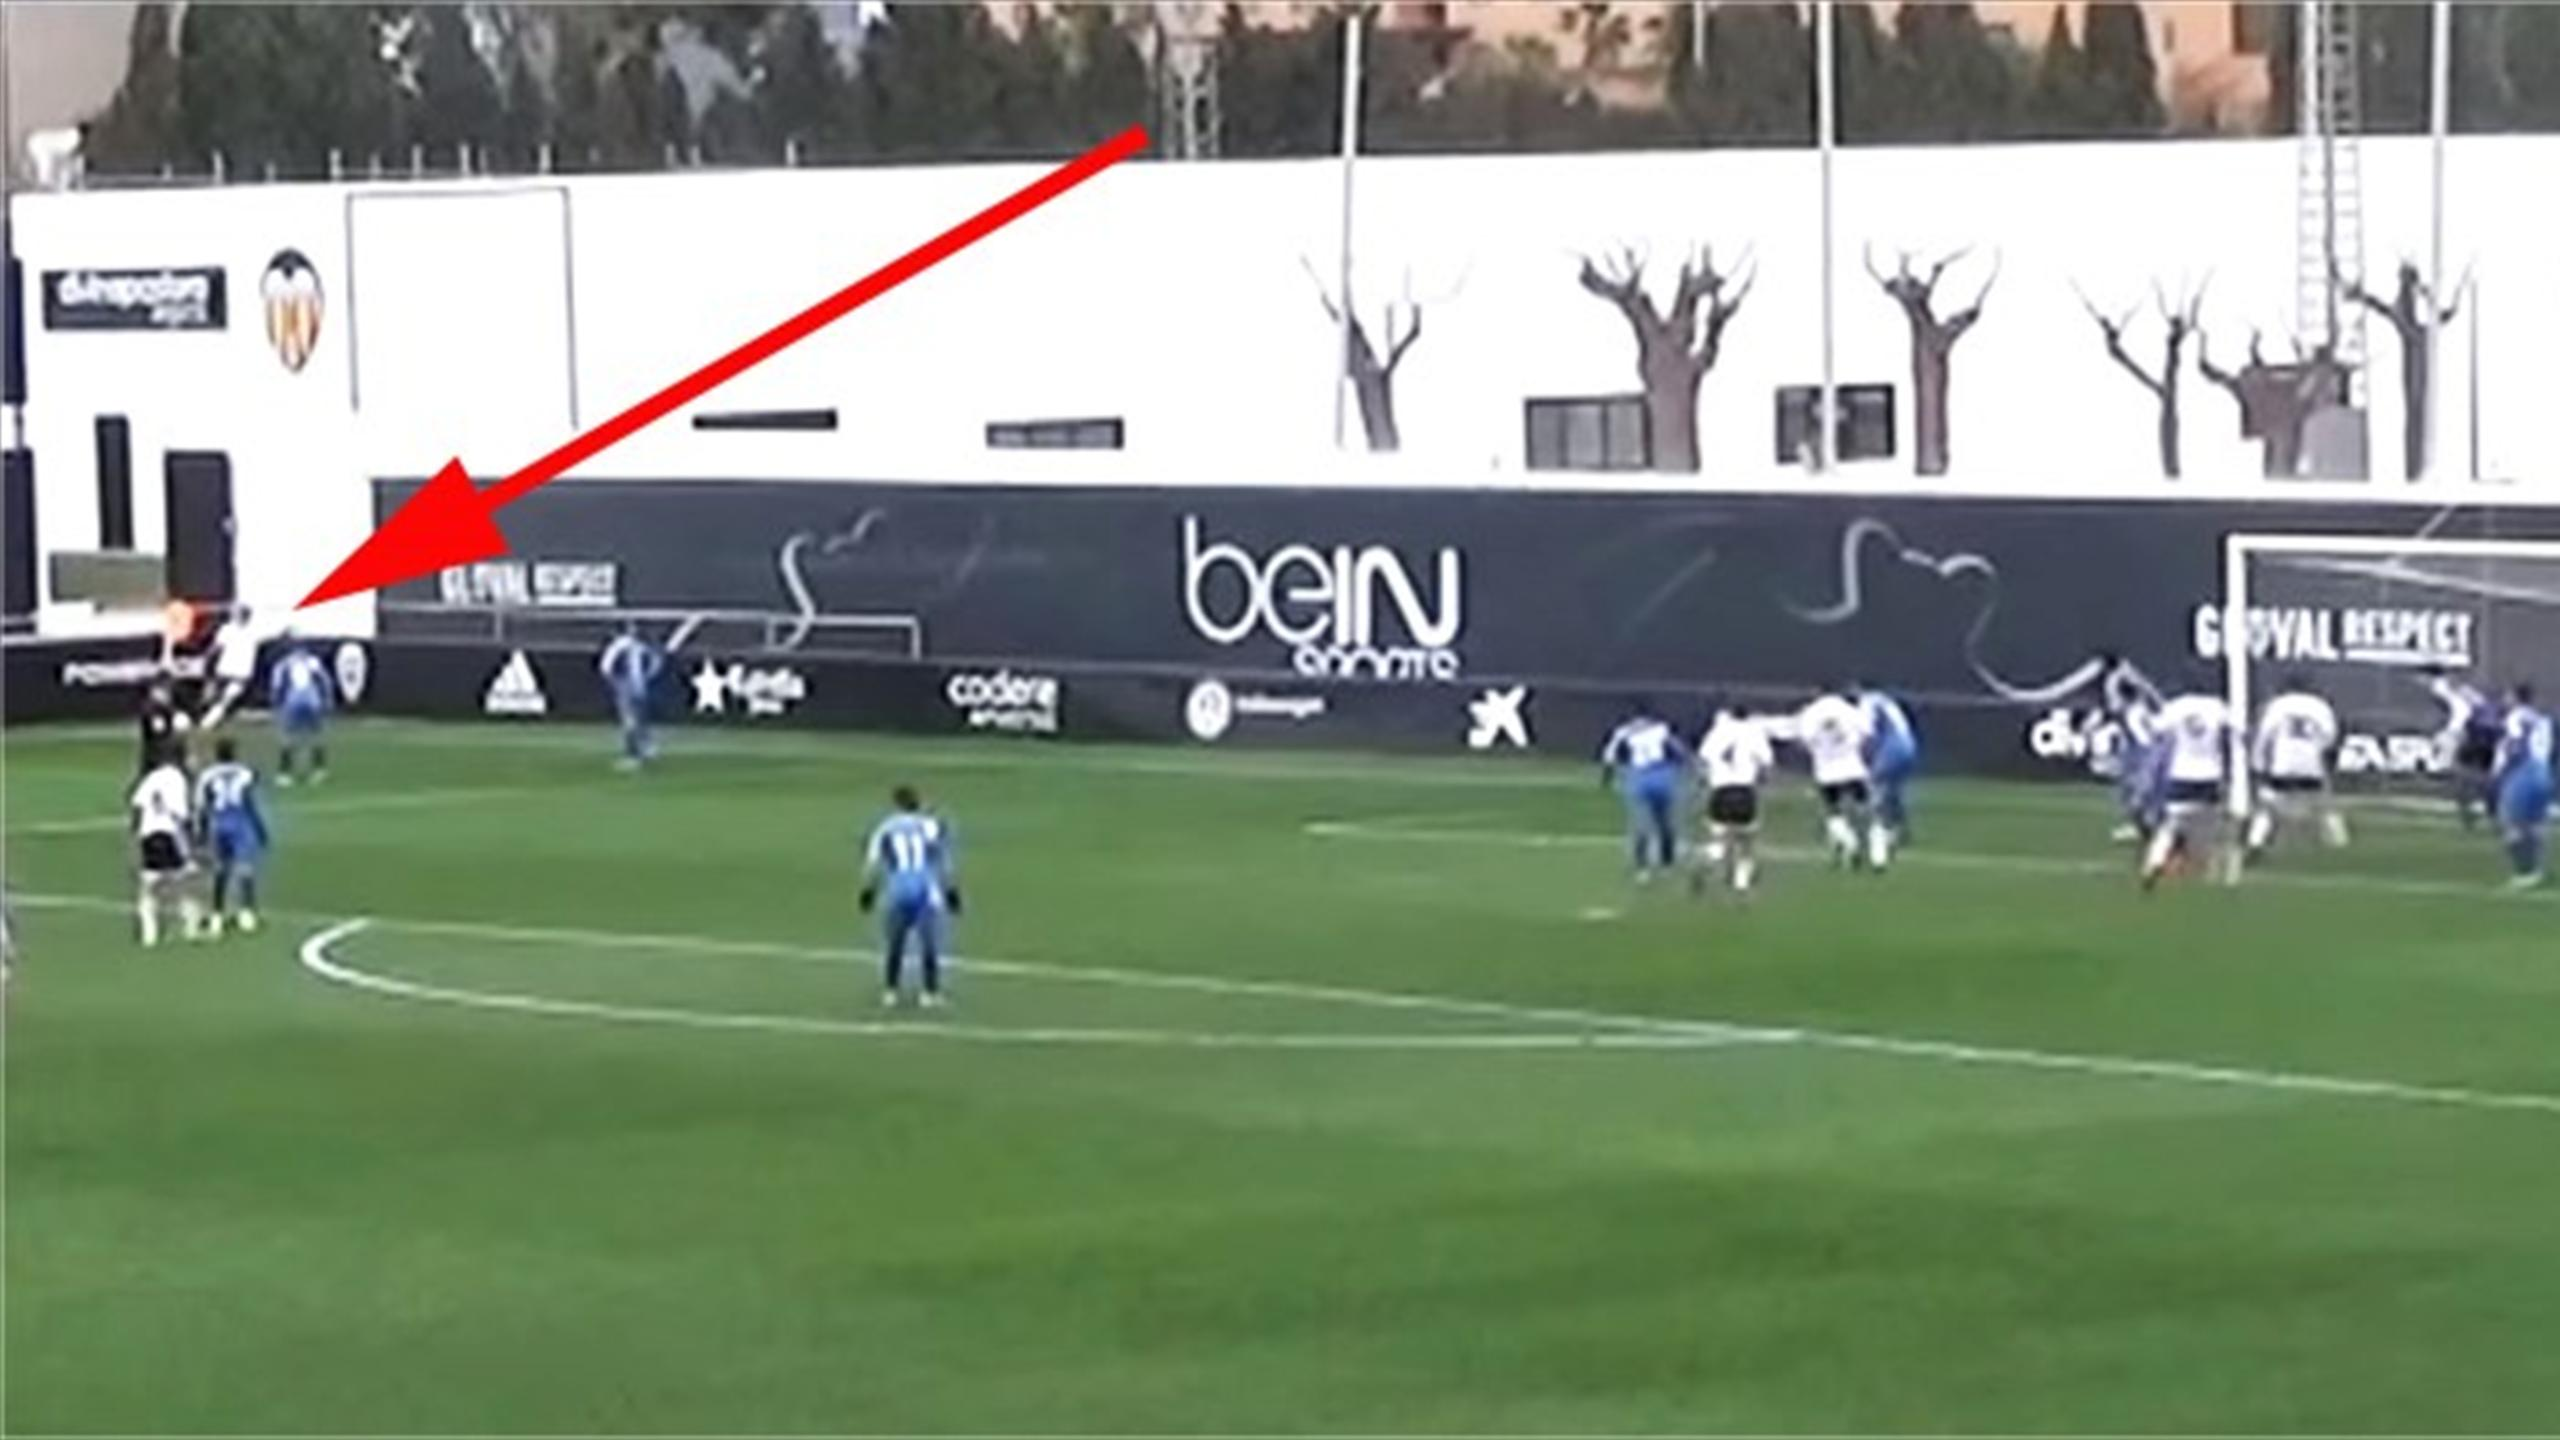 Phil Neville's son Harvey score from corner kick for Valencia youth team (Youtube)